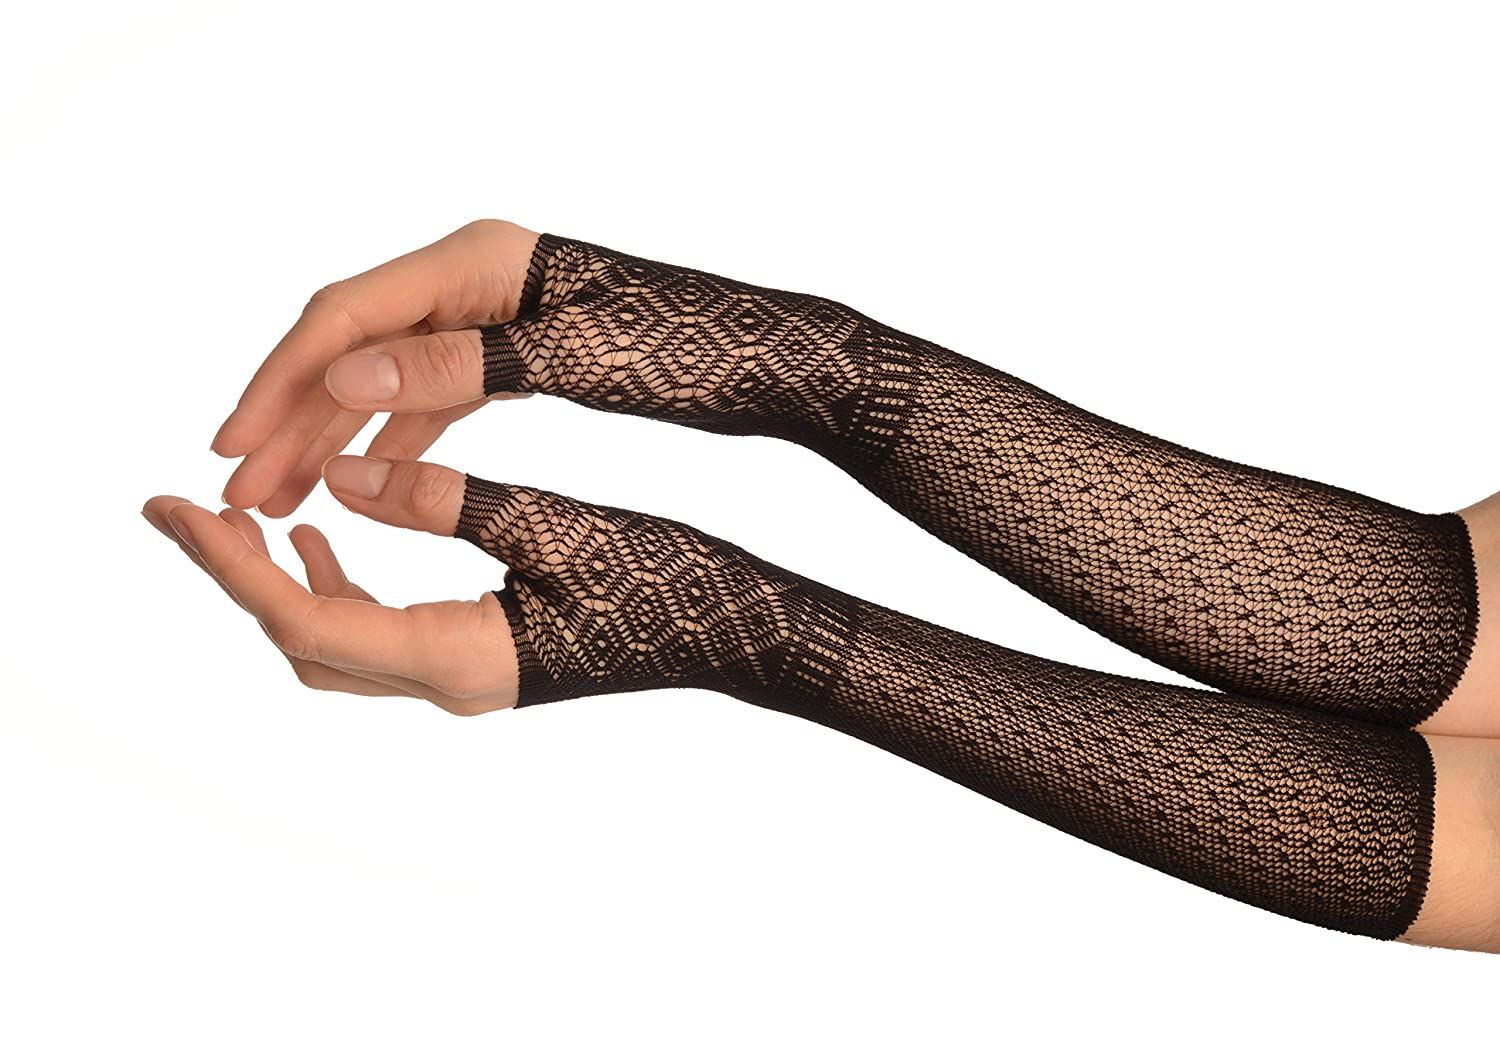 Black Stretchy Crochet Lace Fingerless Evening Gloves - Gloves GL002709